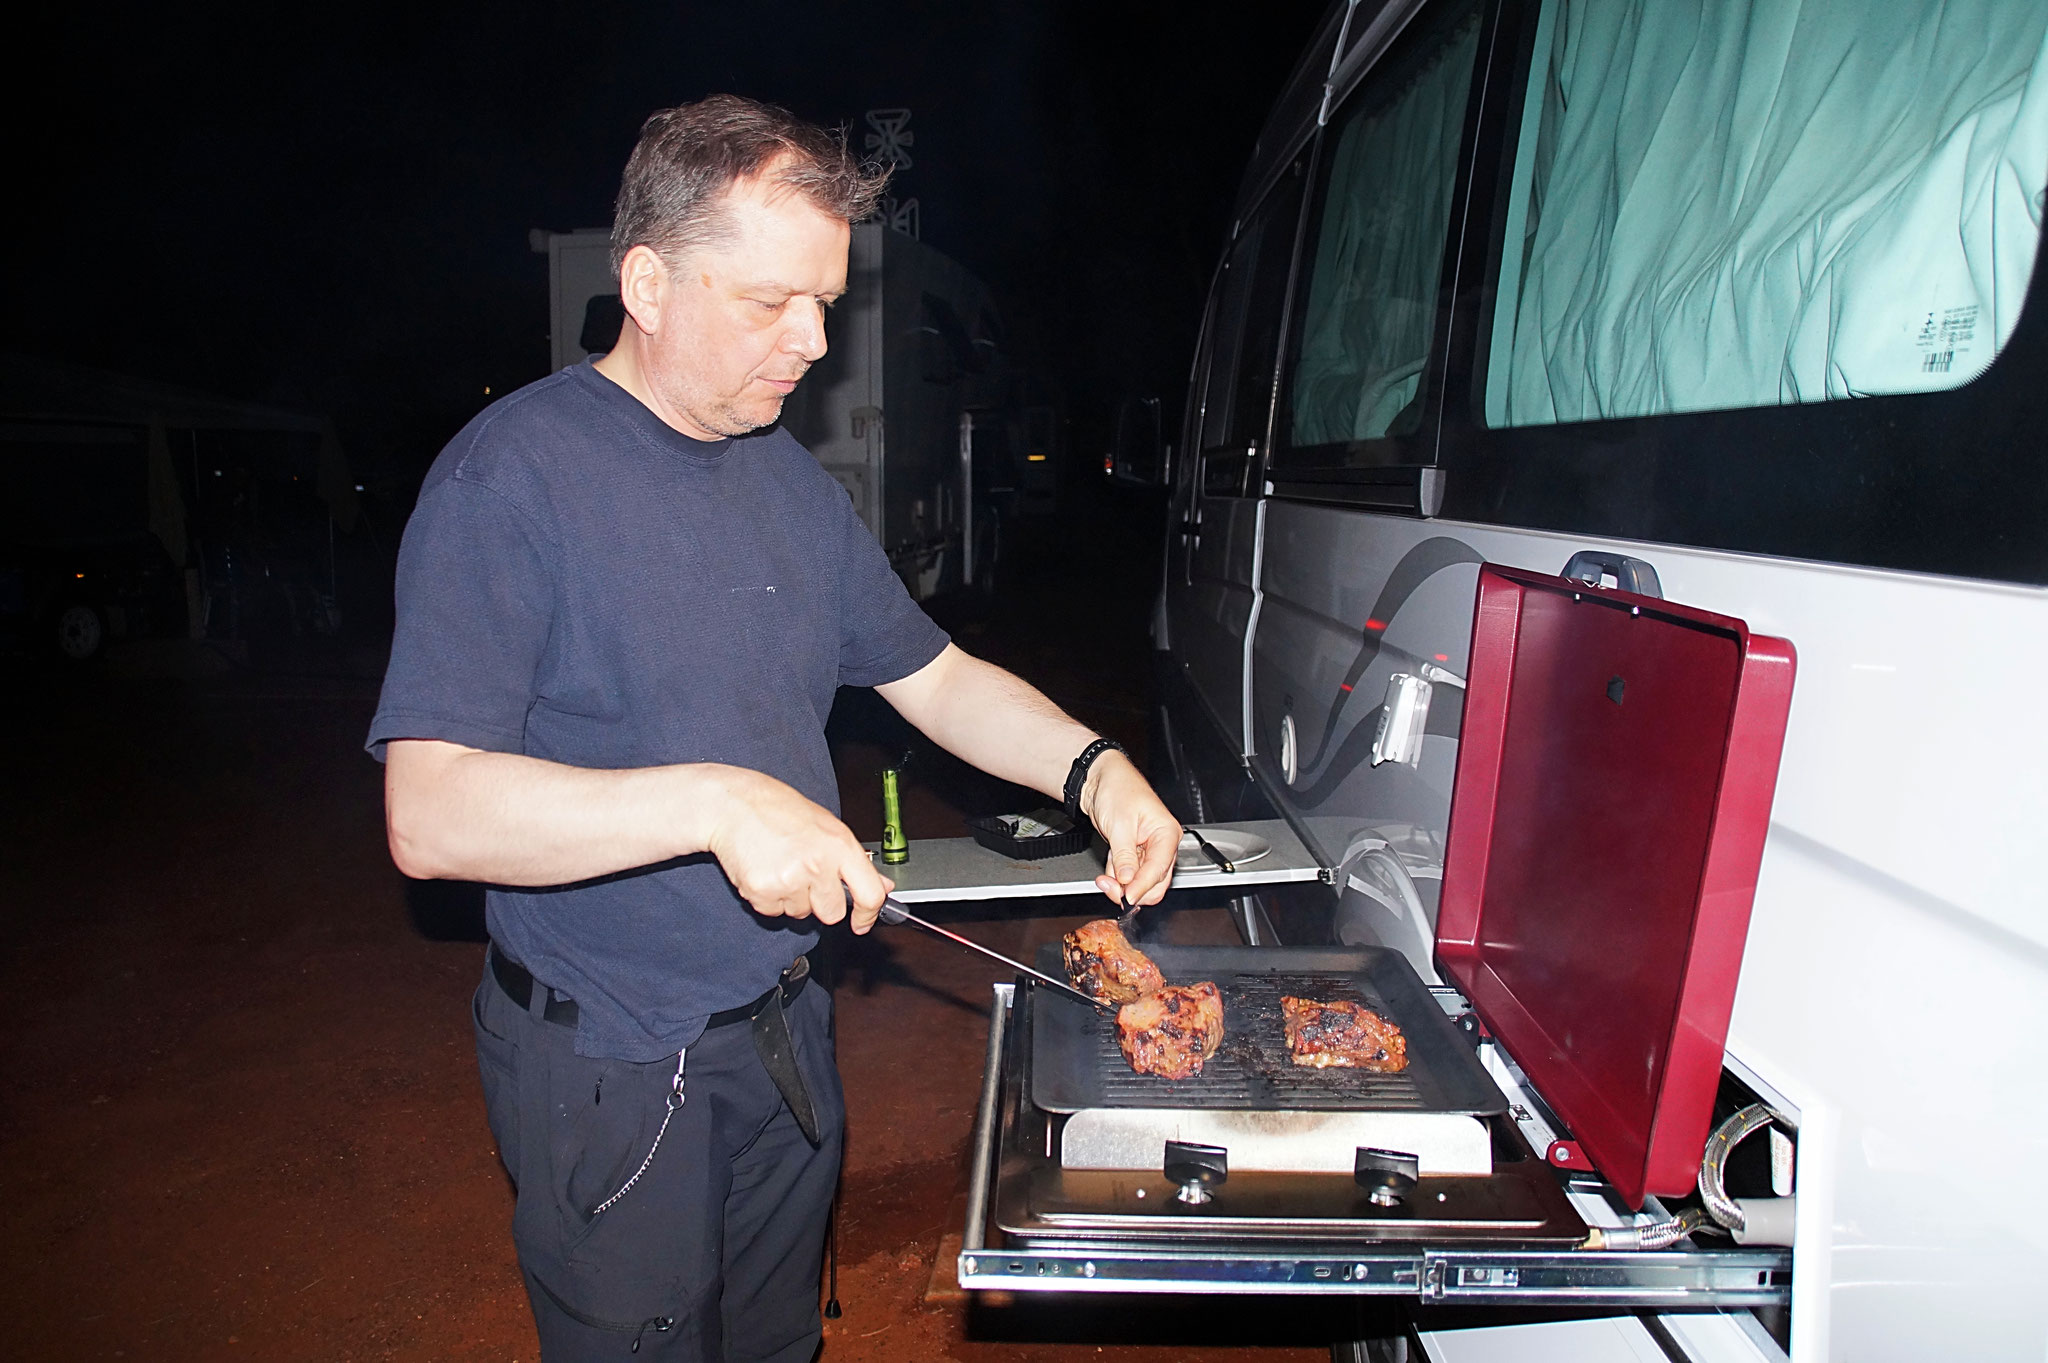 Grillen auf dem Ayers Rock Campground